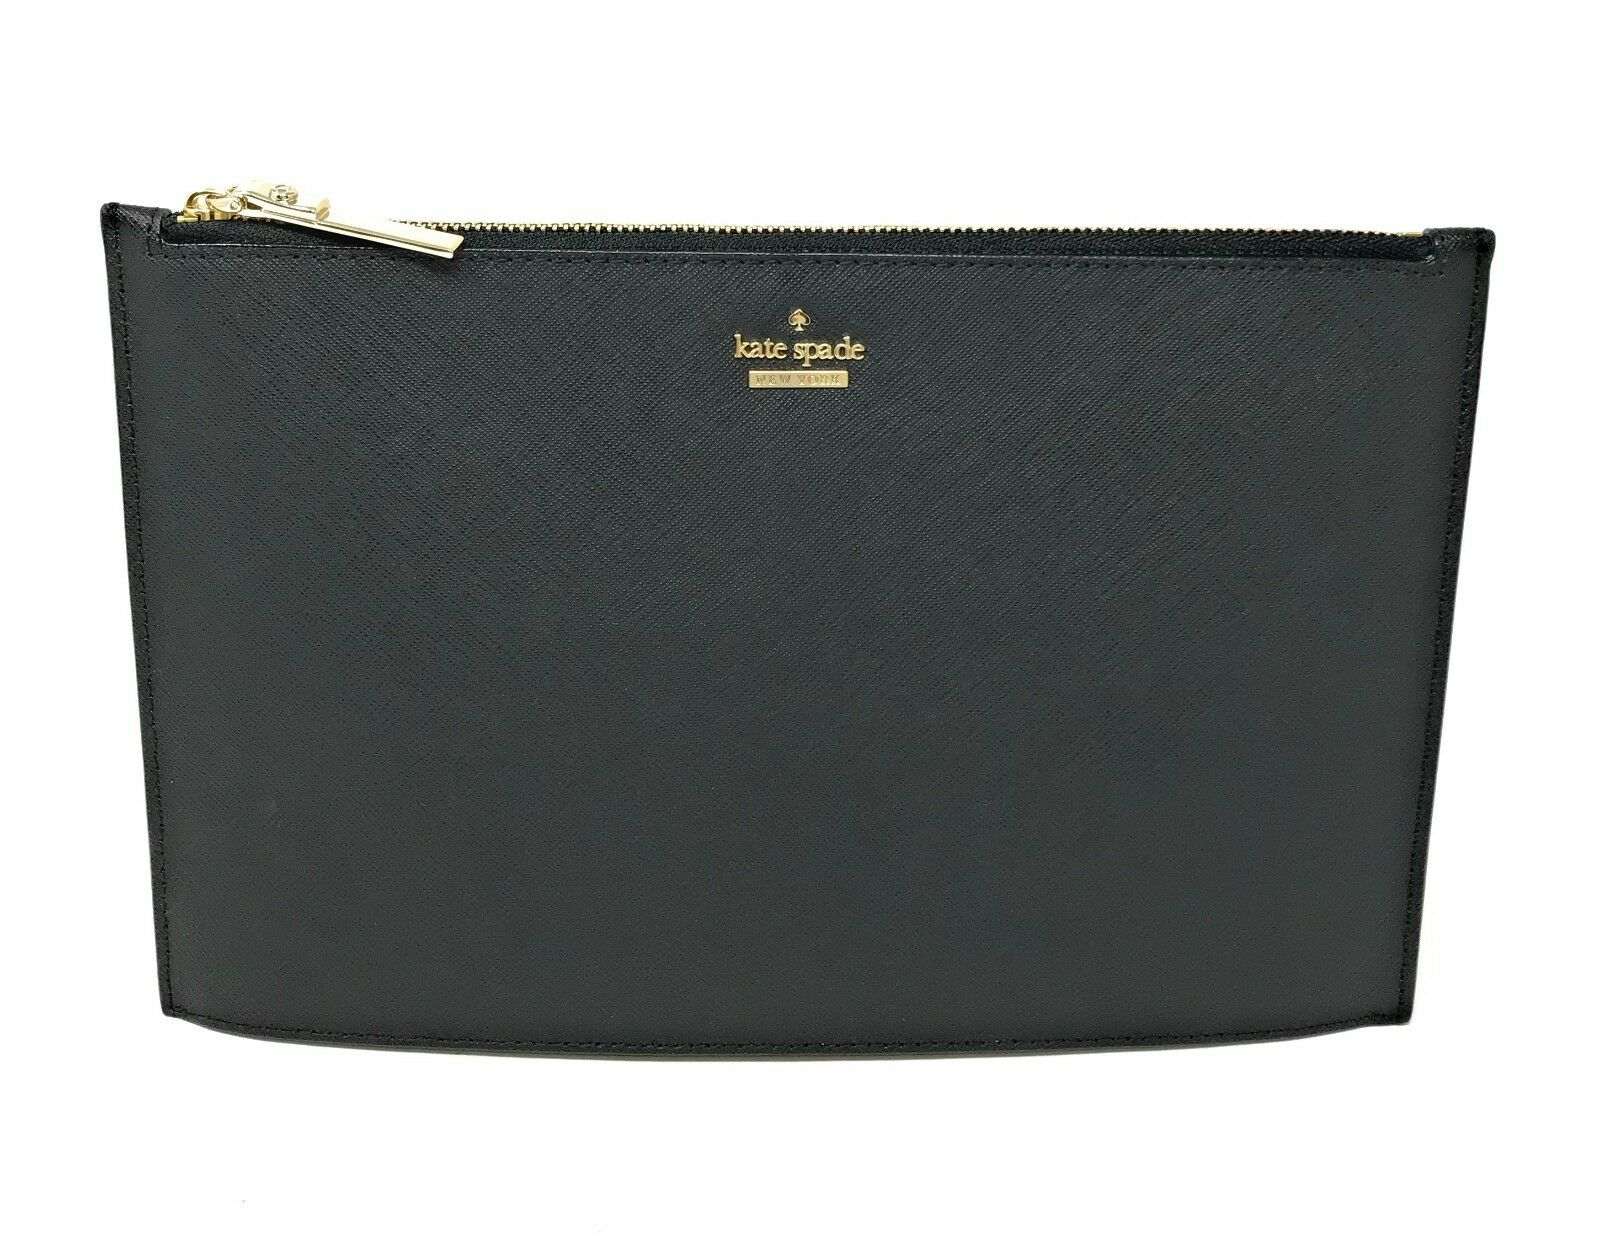 Kate Spade Cameron Street Lilia Leather Clutch Bag Black